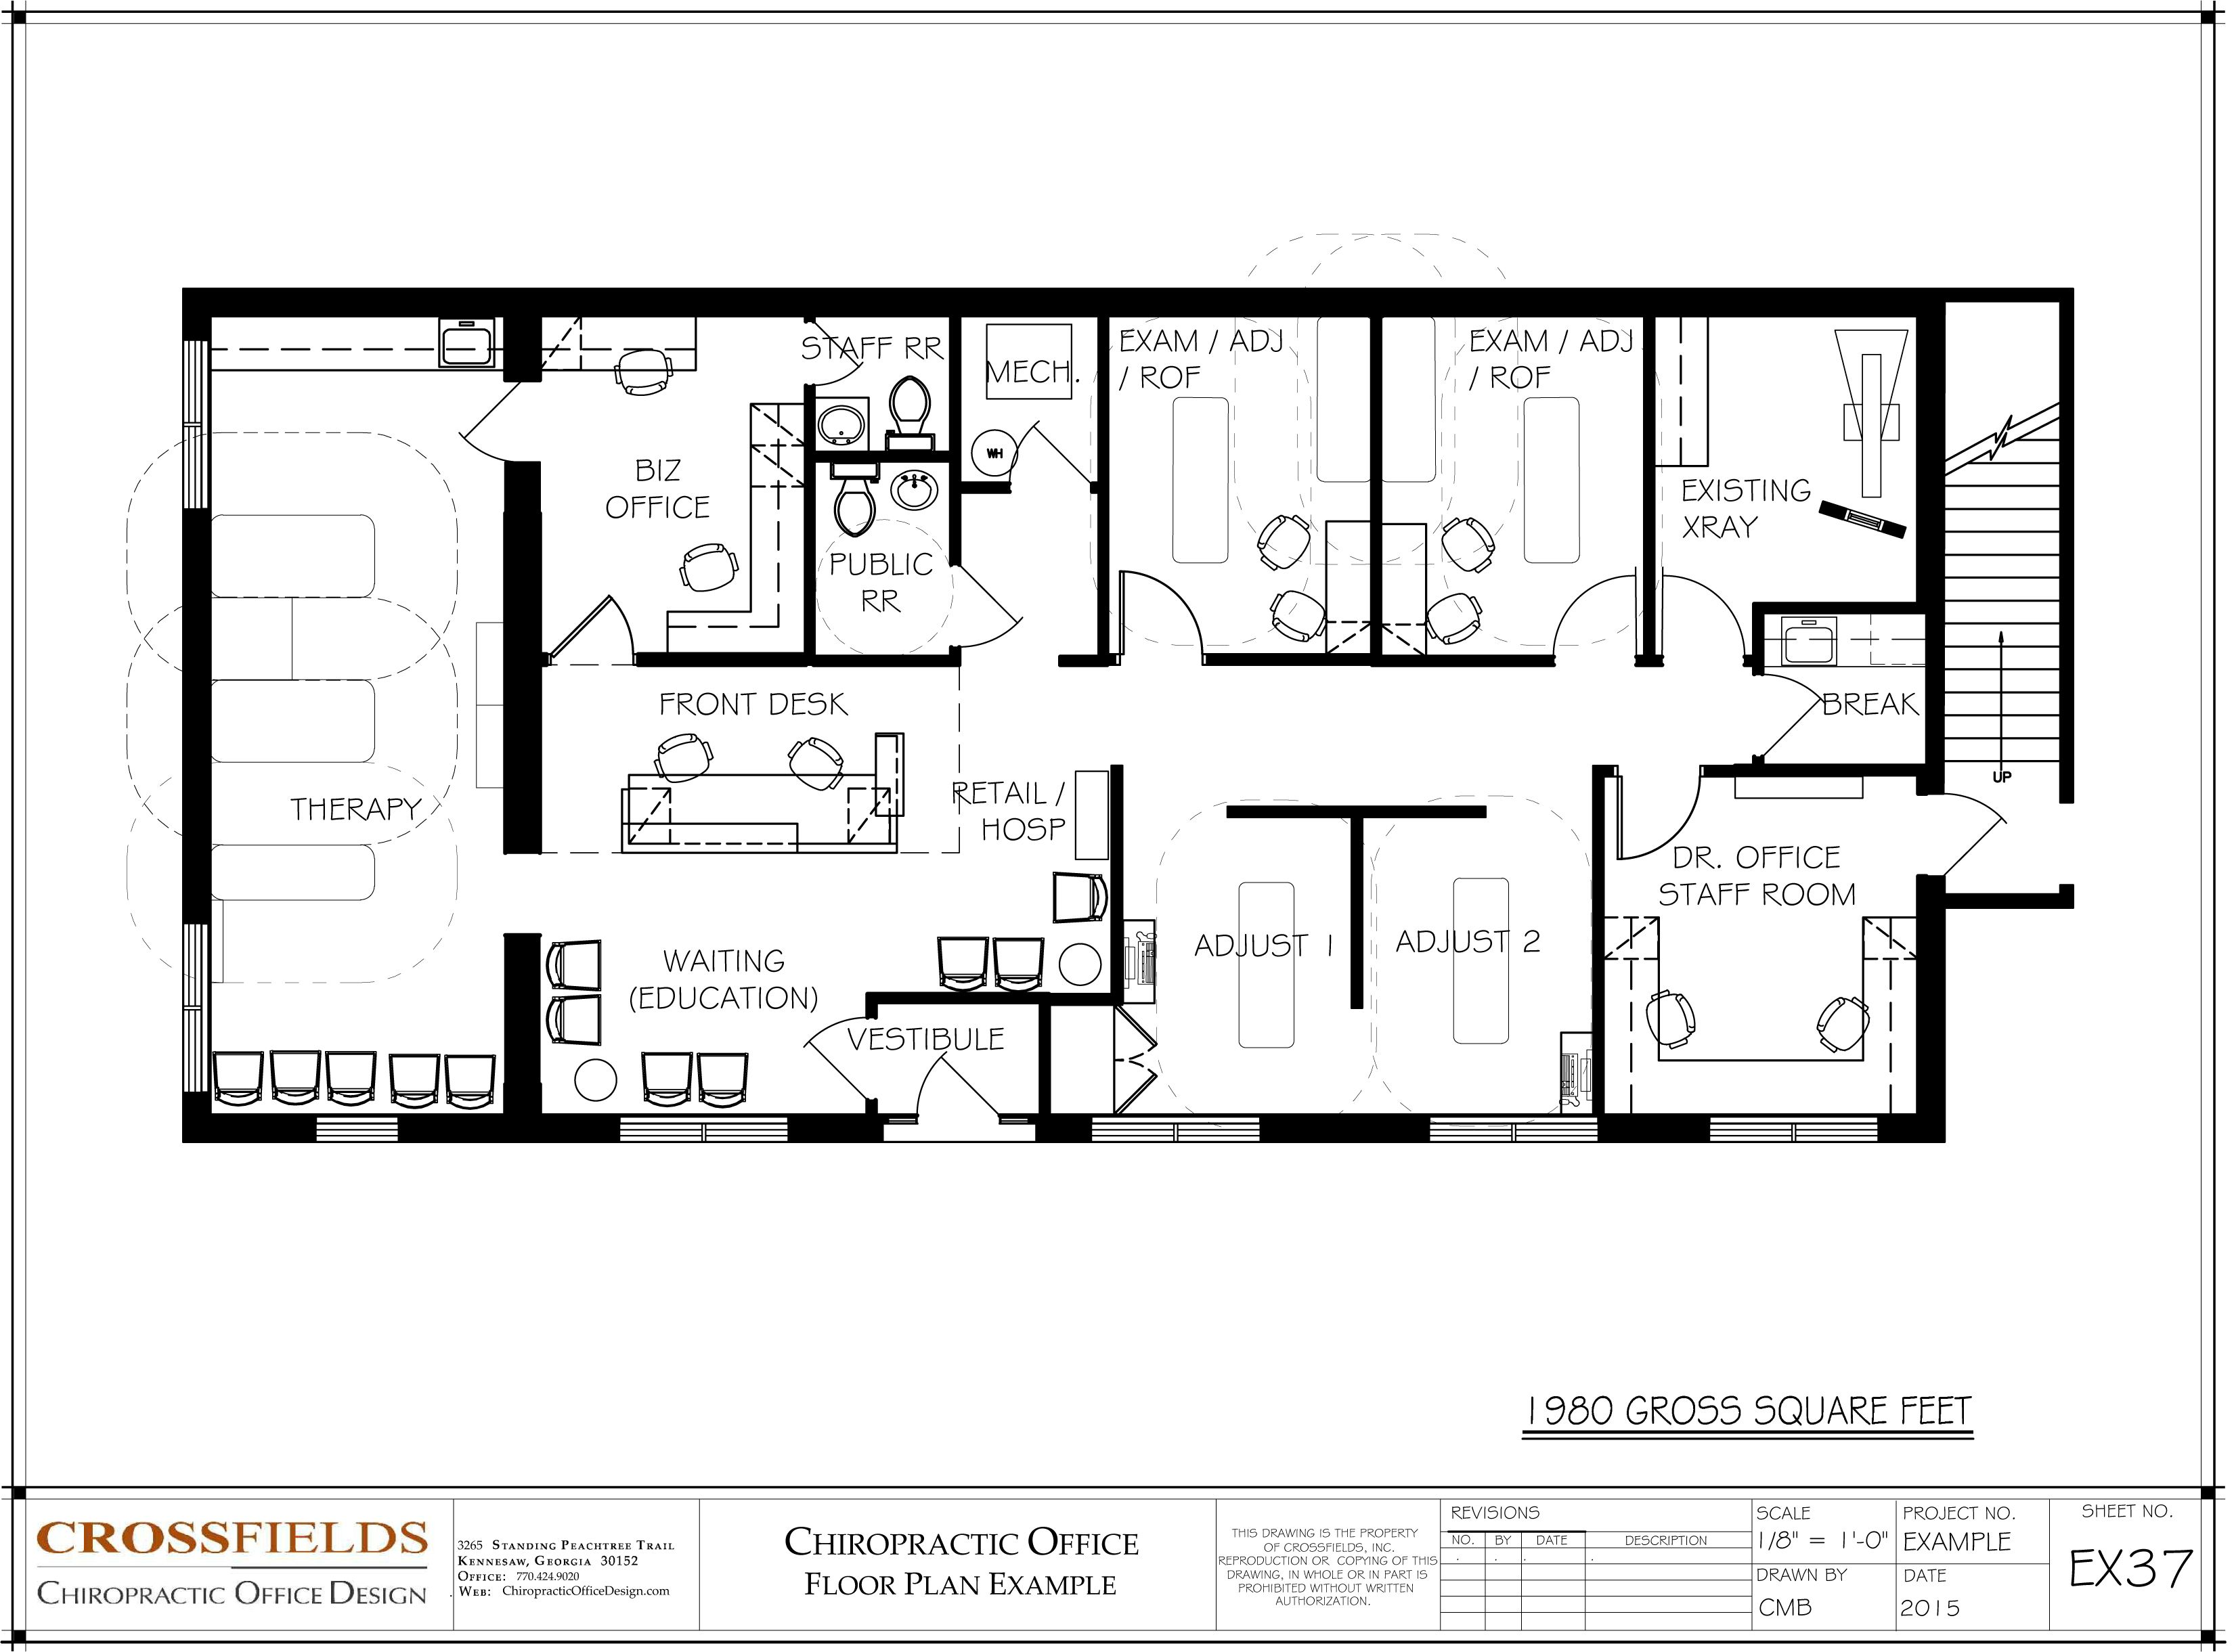 Open Floor Plans Vs Closed Floor Plans: #chiropractic #Floorplan With Semi Open Adjusting